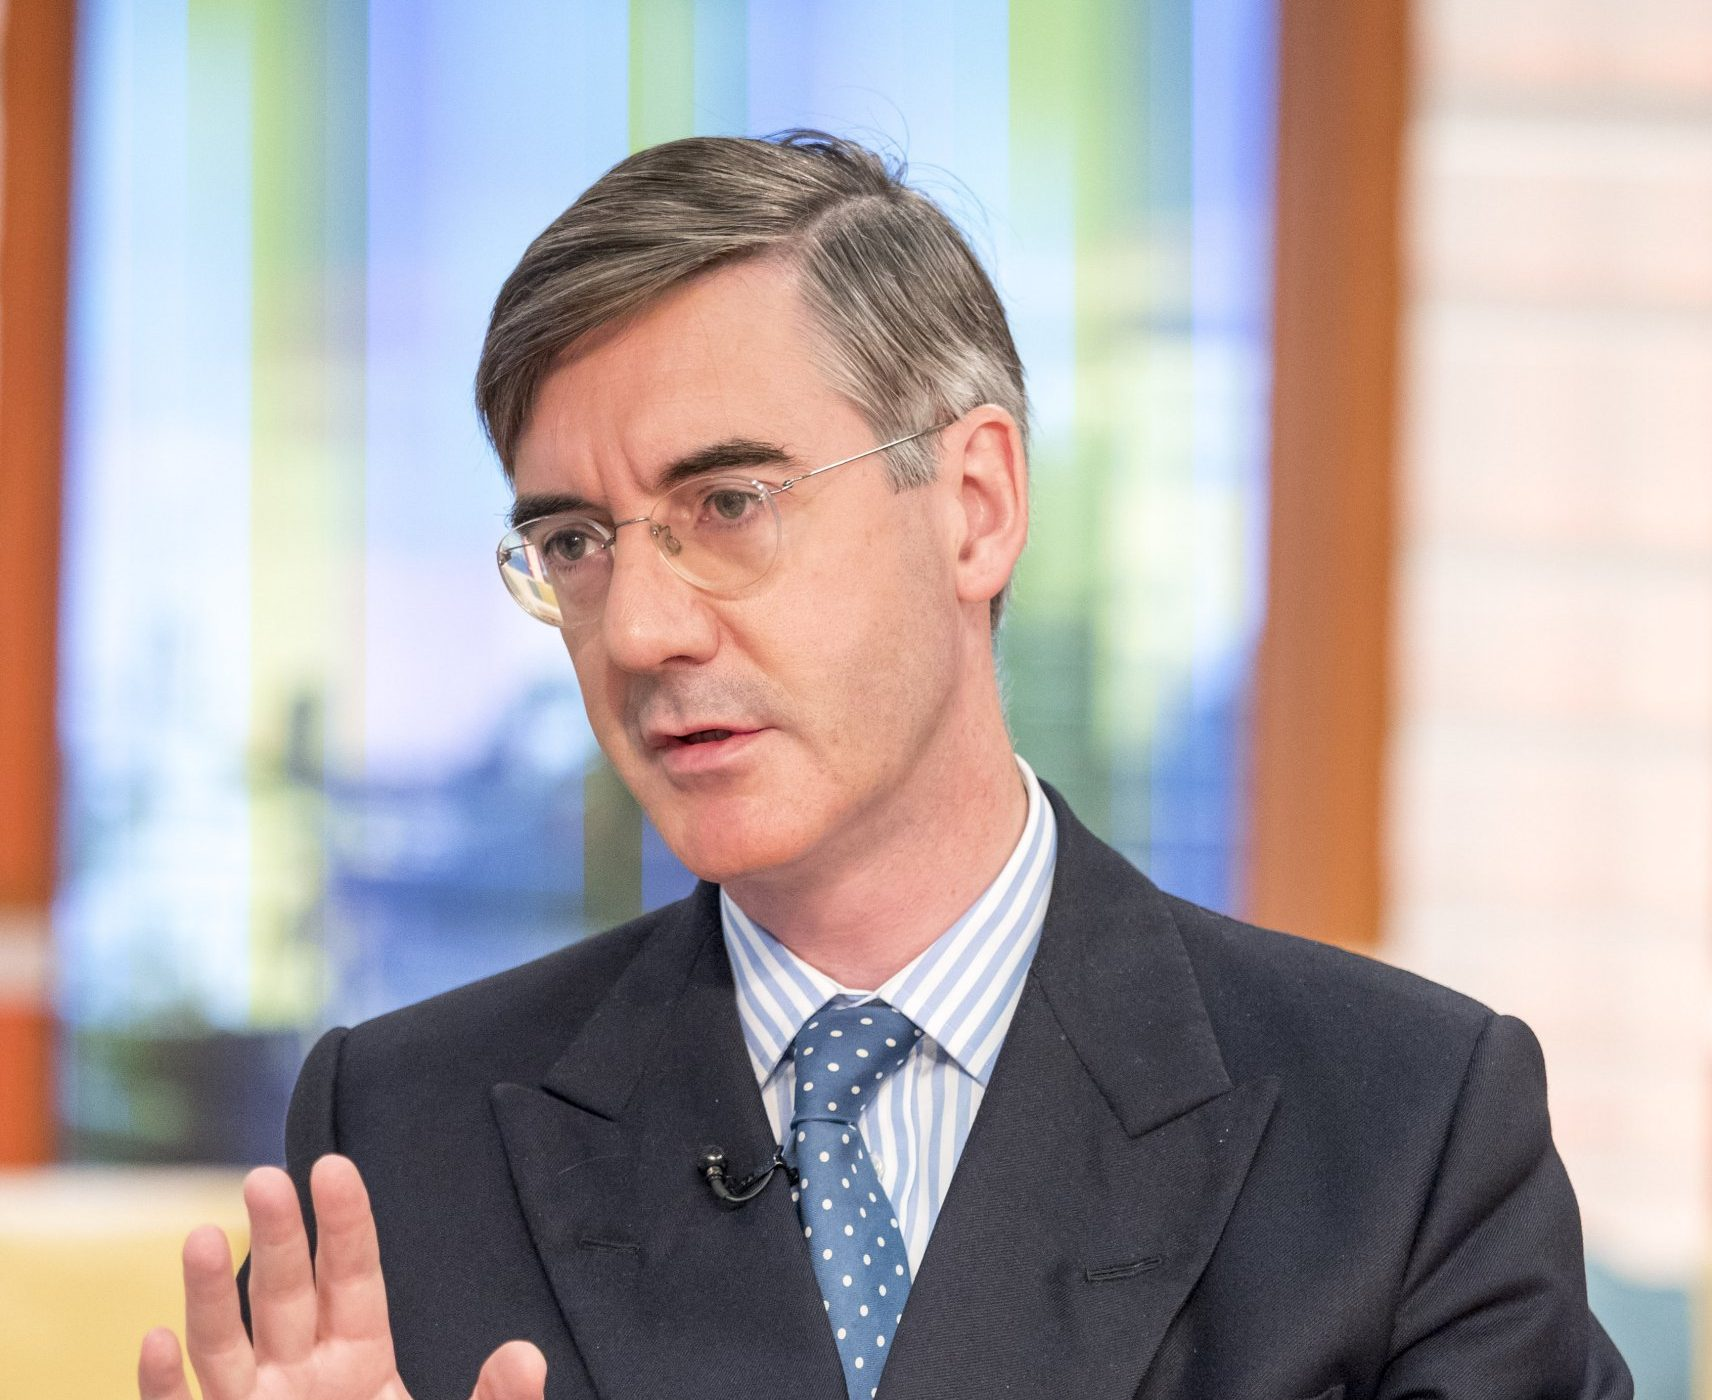 Jacob Rees-Mogg says he's against abortion – including in rape and incest cases